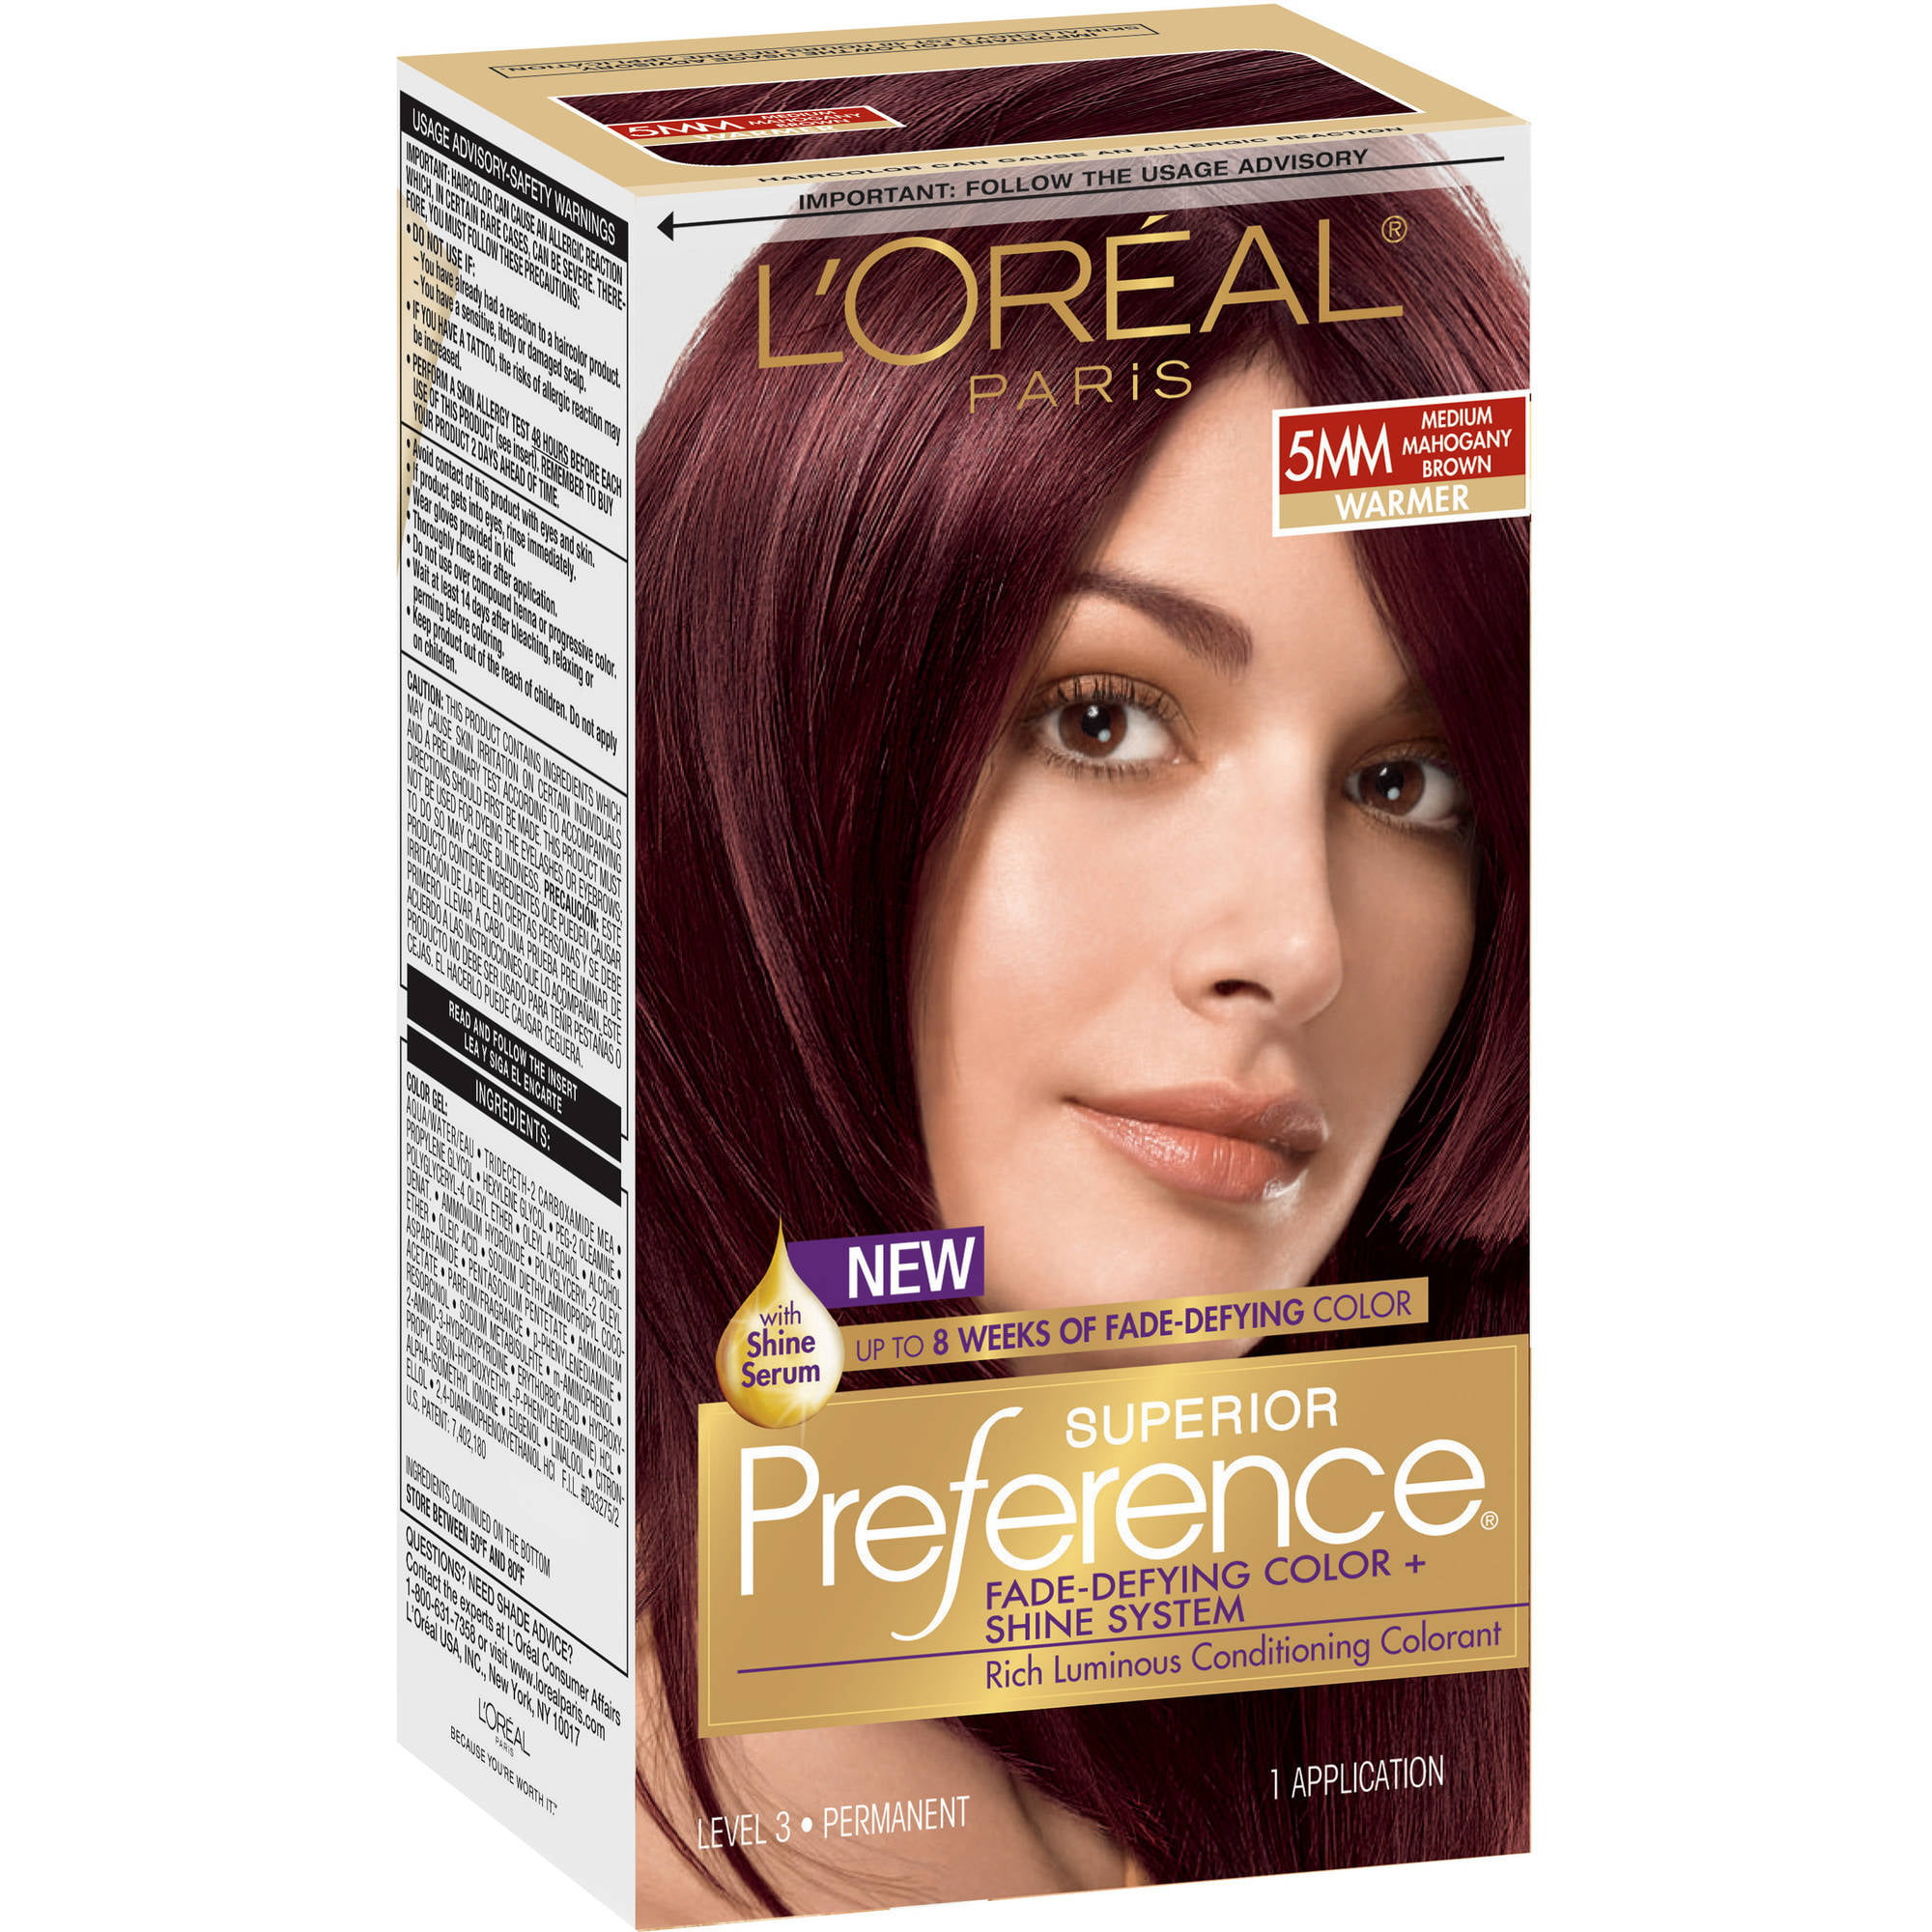 Loreal Superior Preference Rich Luminous Conditioning Colorant 1 Ea